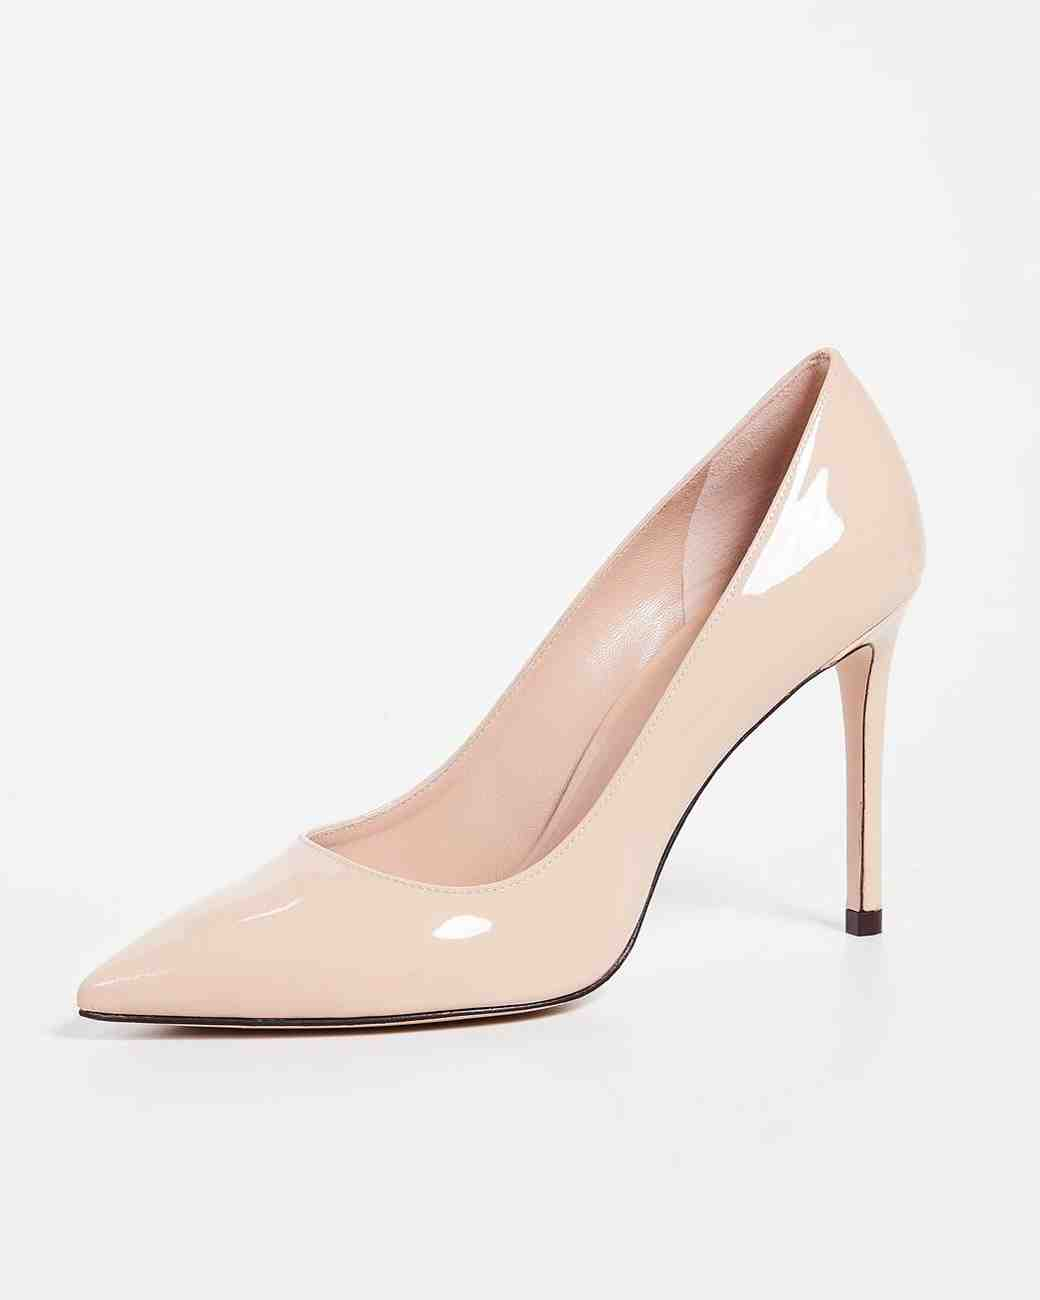 nude shoe pink high heel leigh pumps